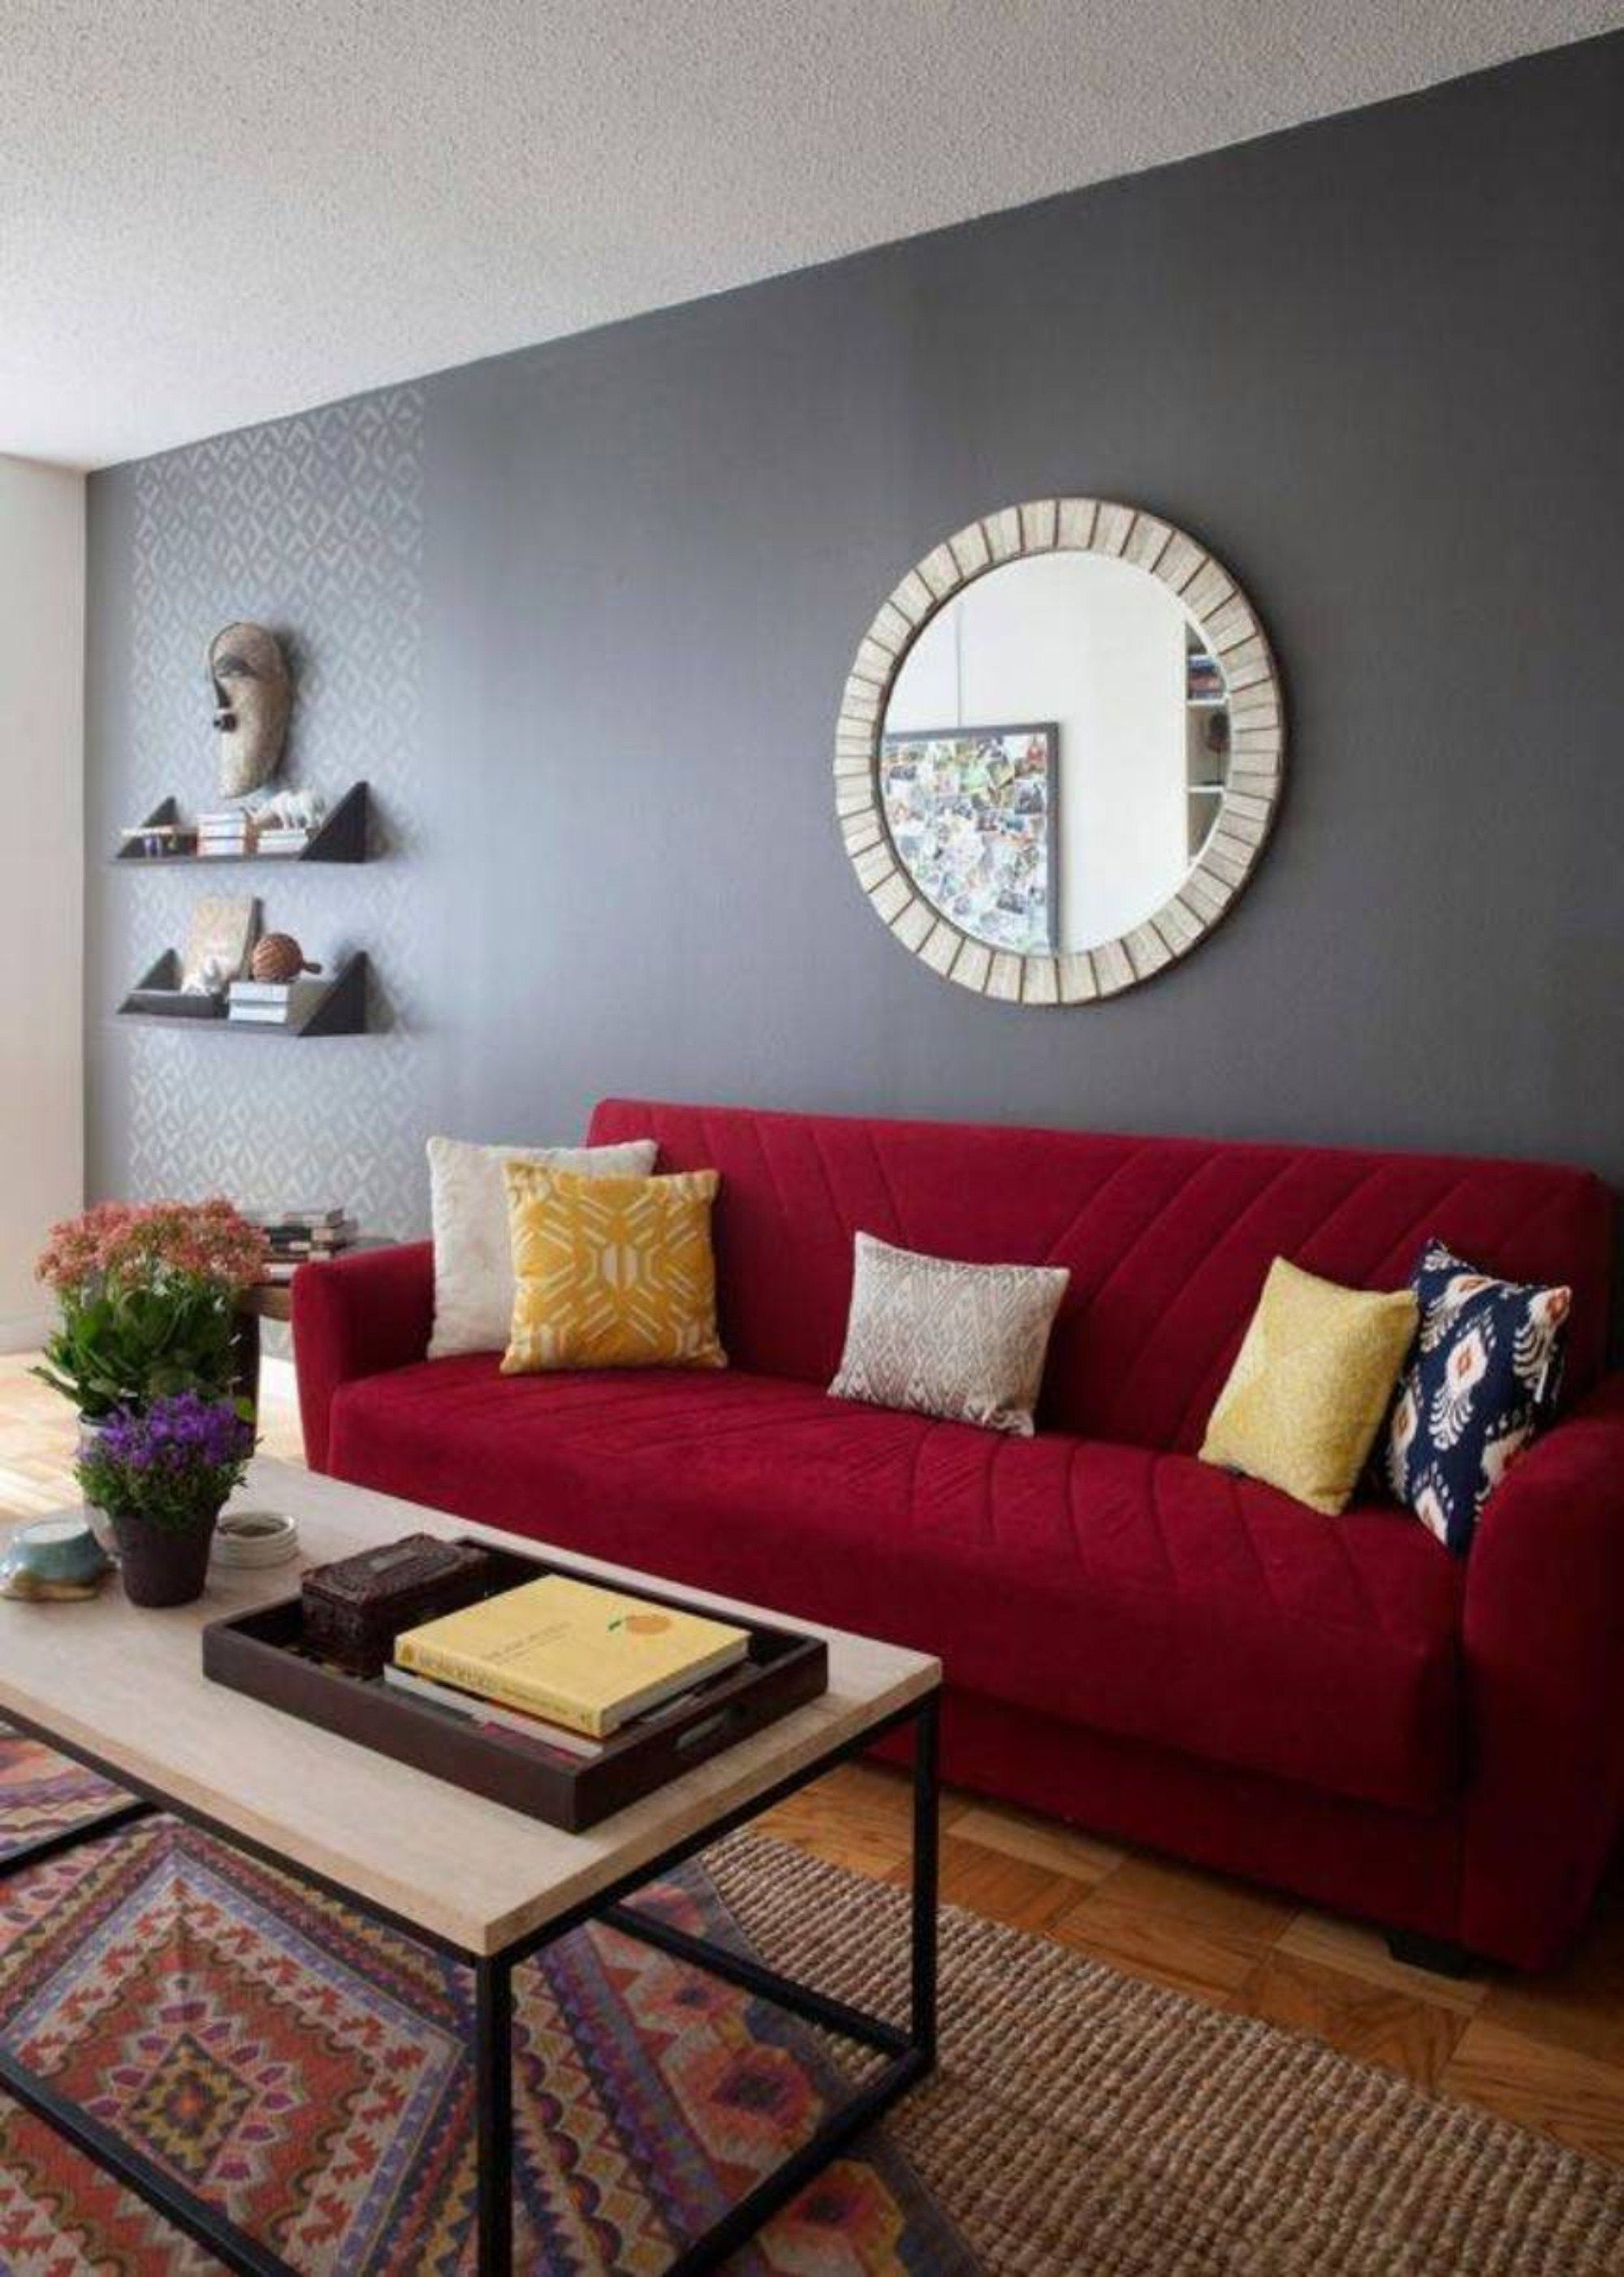 Farben Wohnzimmer Rotes Sofa Pin By Annie Gower On Home Decor Rotes Sofa Wohnzimmer Dekor